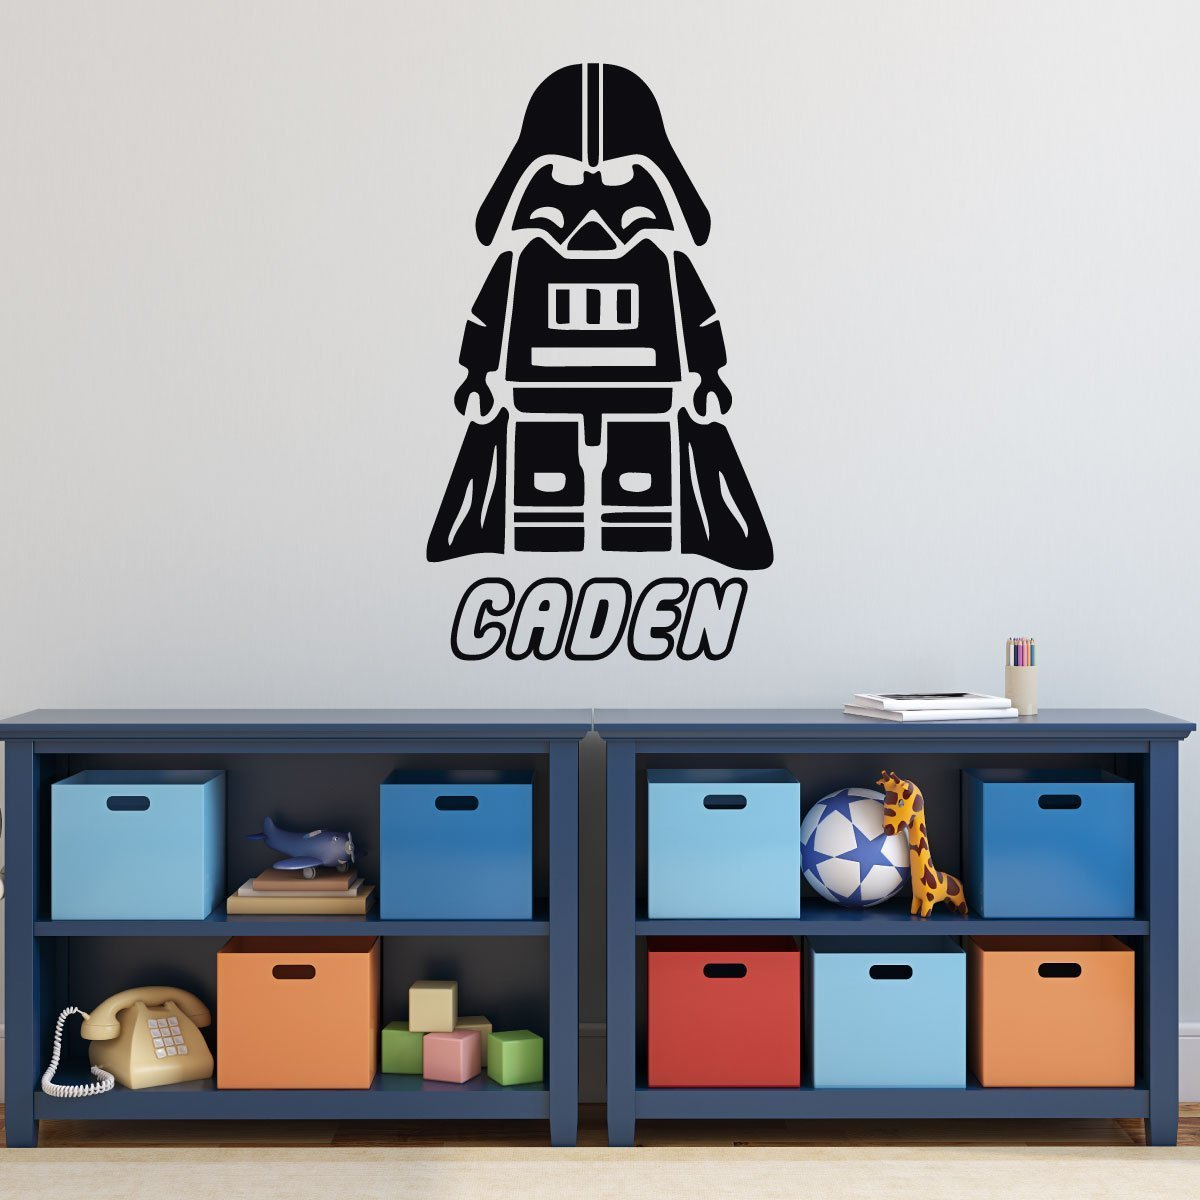 Lego Darth Vader Sticker Vinyl Wall Decal for Boys Room